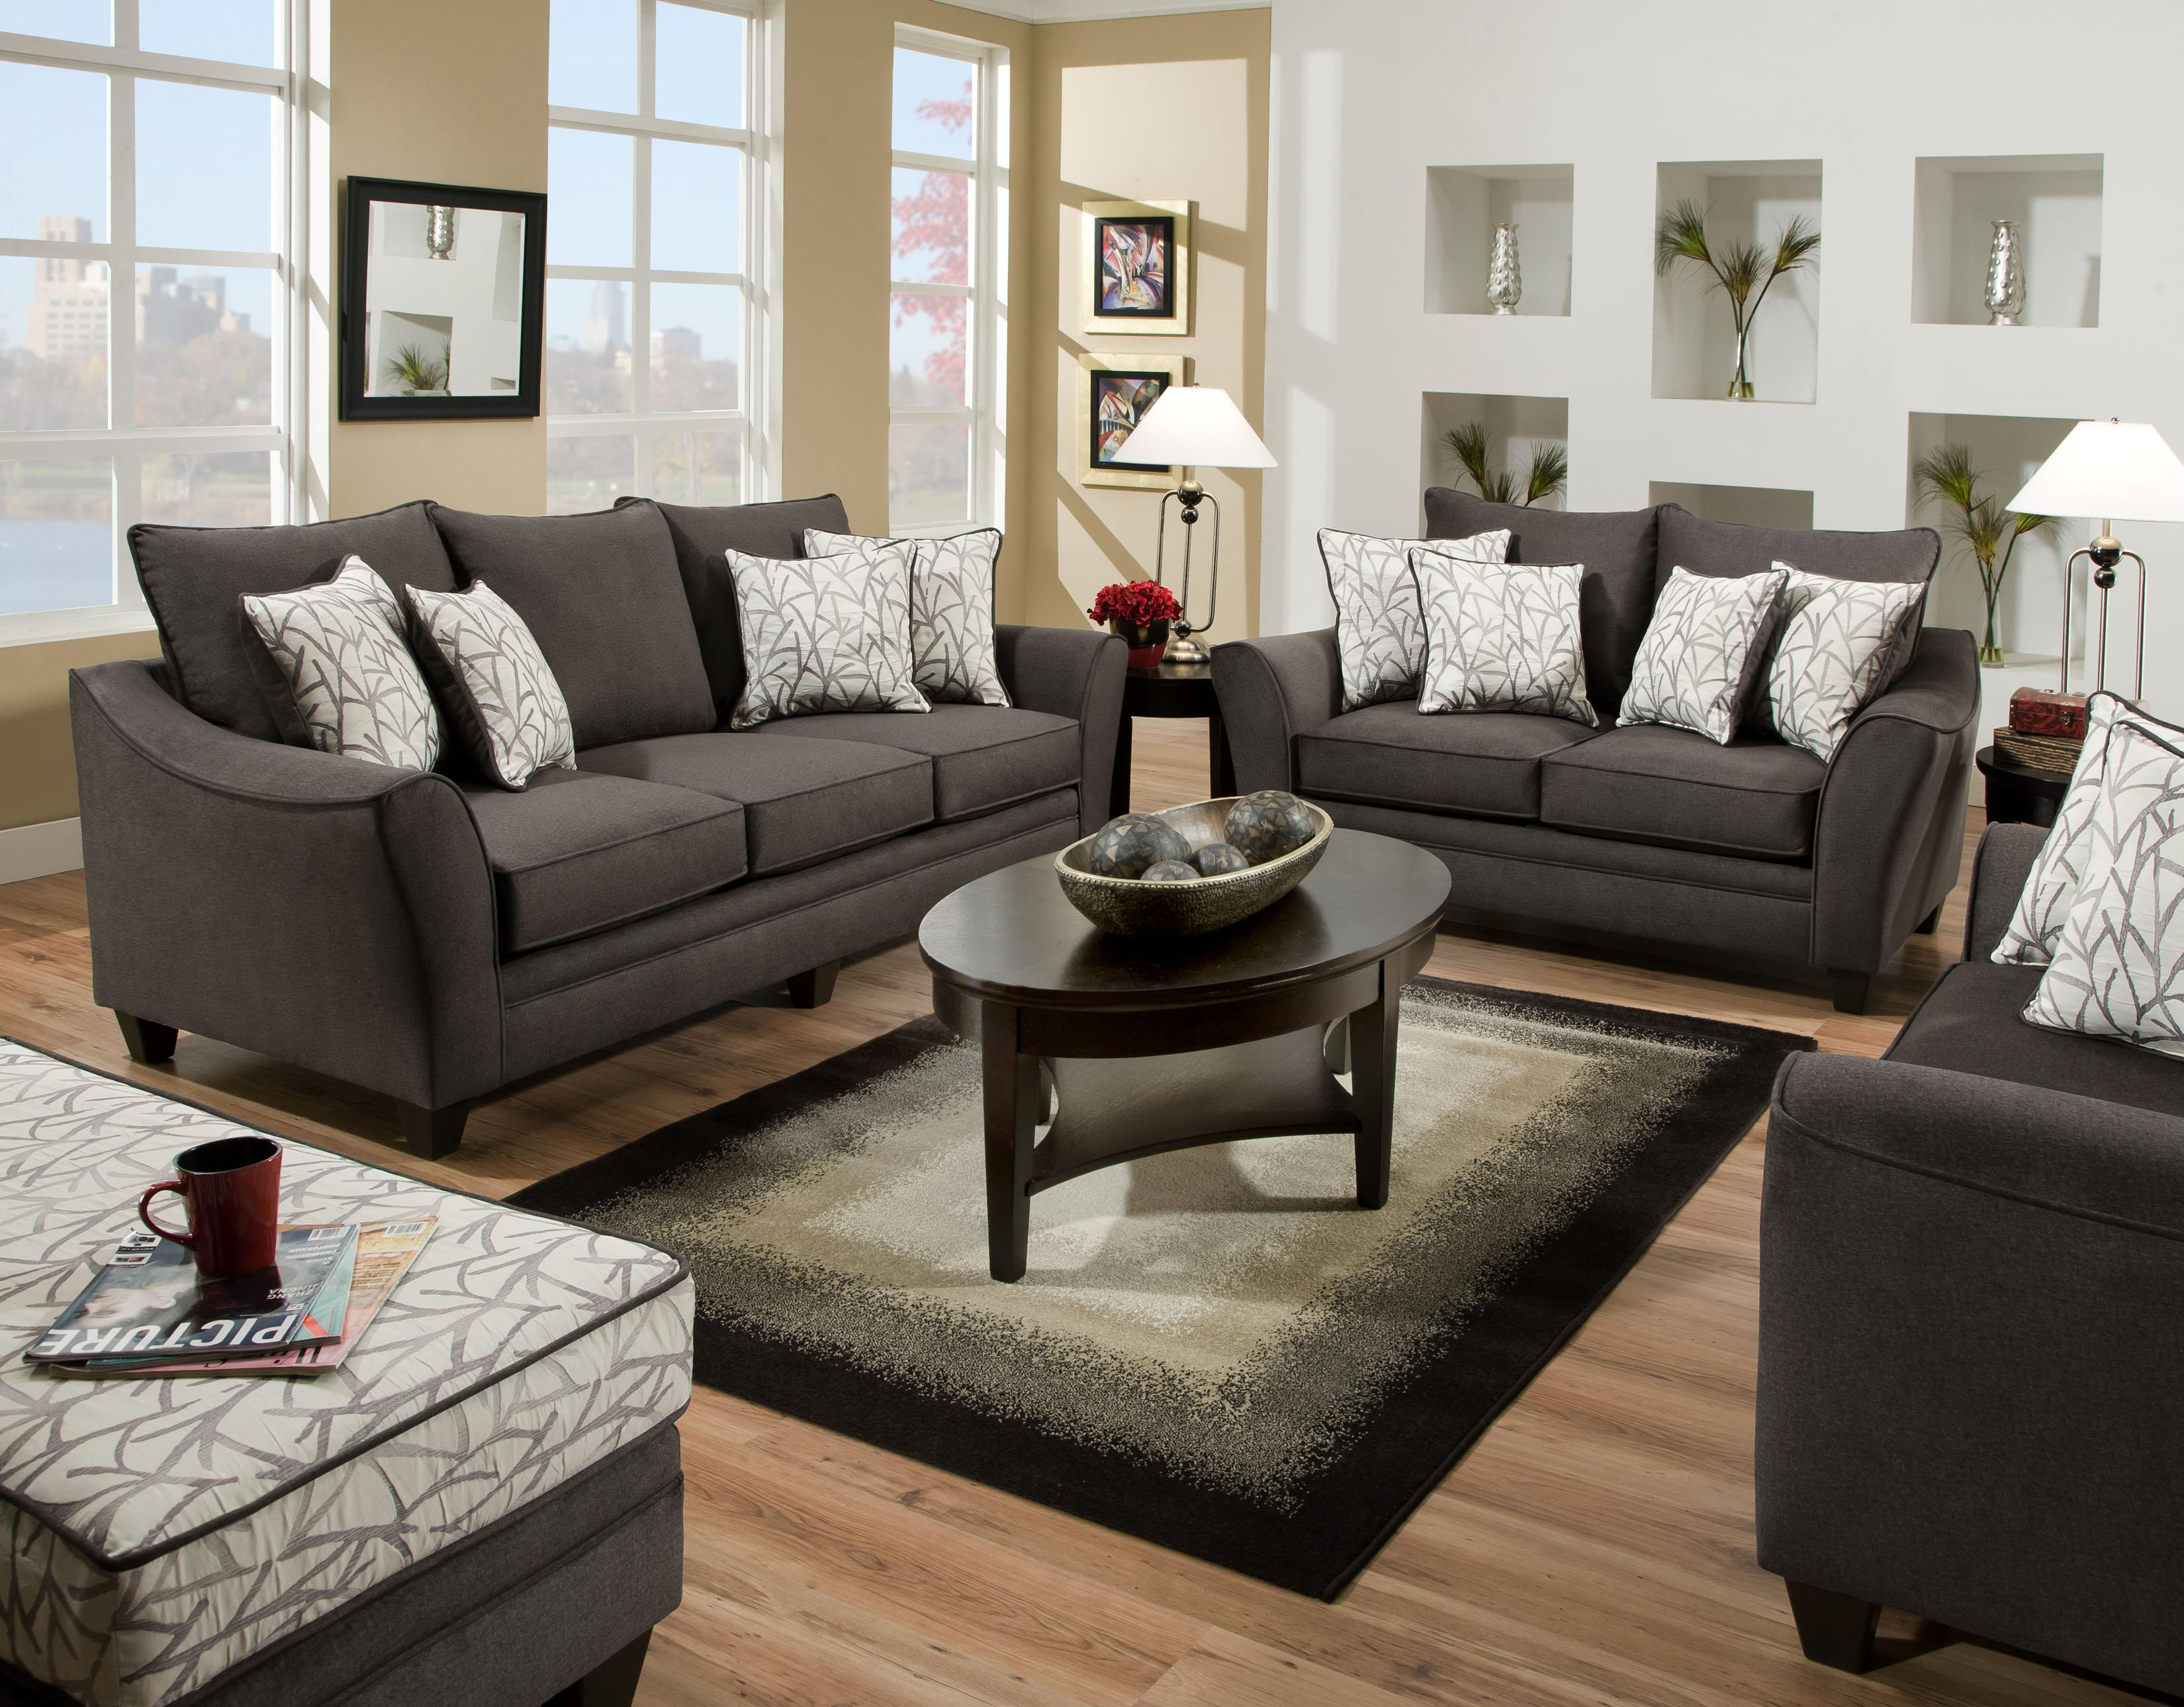 American Furniture 3850 Stationary Living Room Group Royal Furniture Stationary Living Room